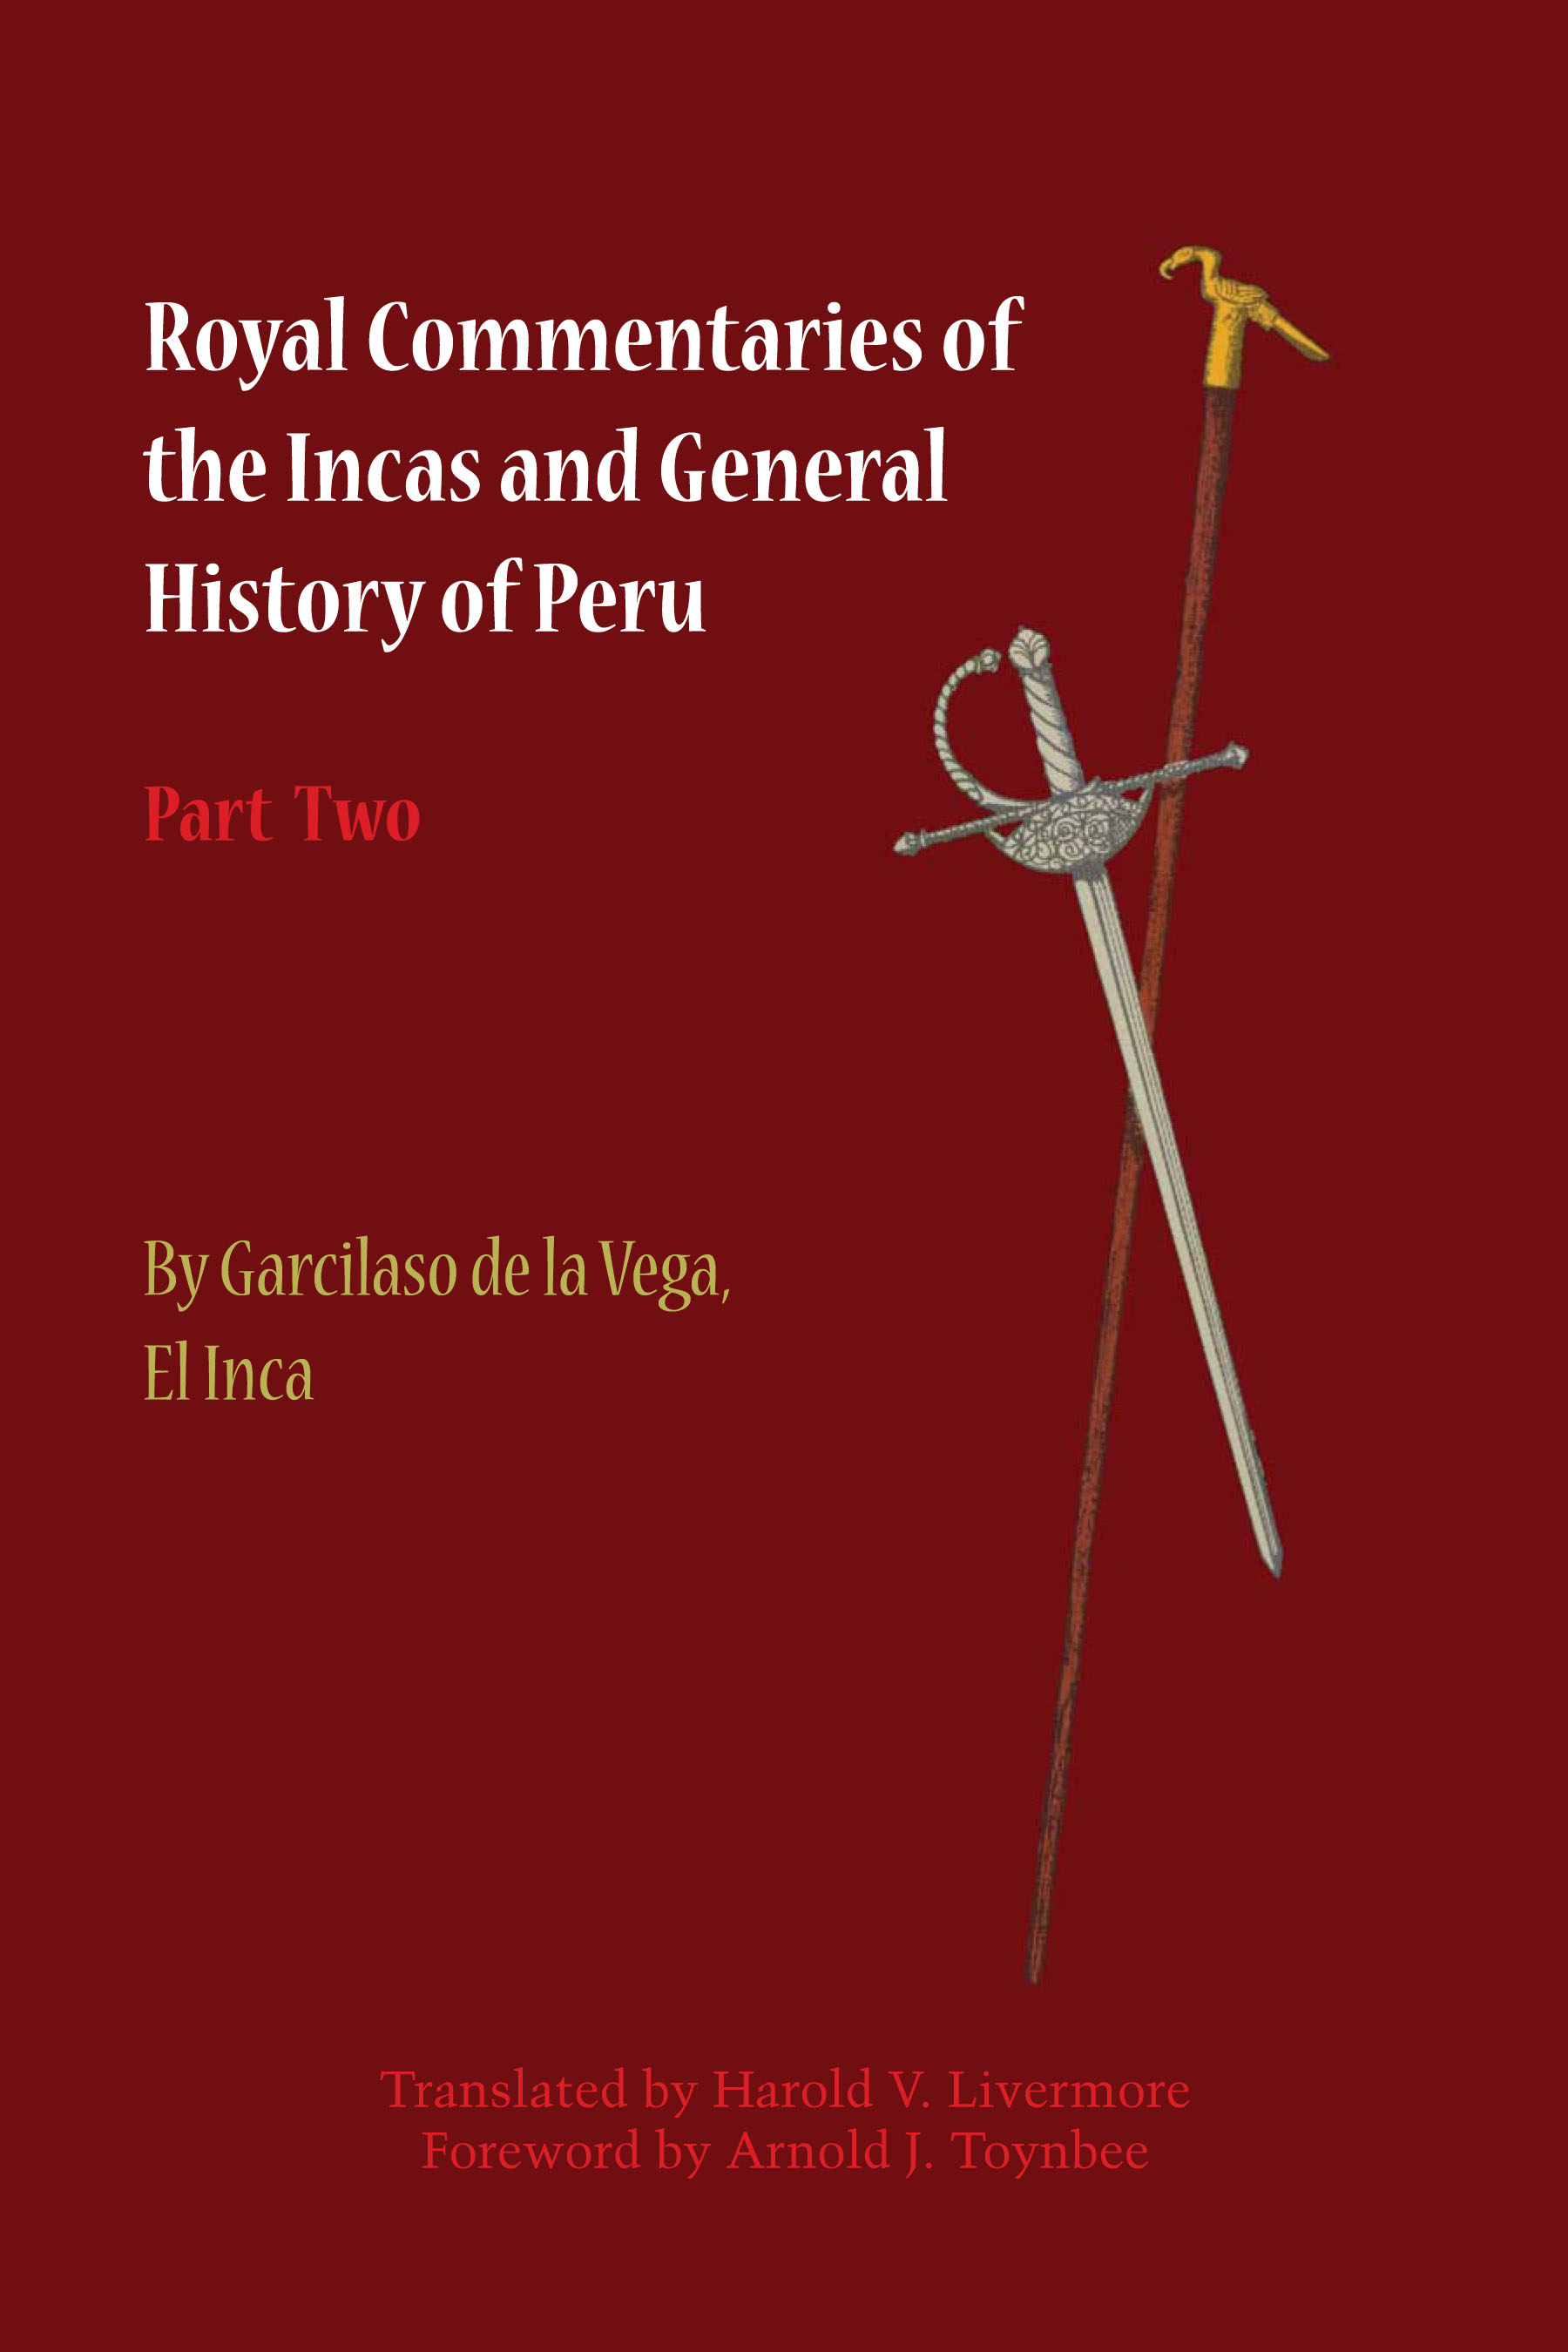 Cover of Royal Commentaries of the Incas and General History of Peru, Part Two